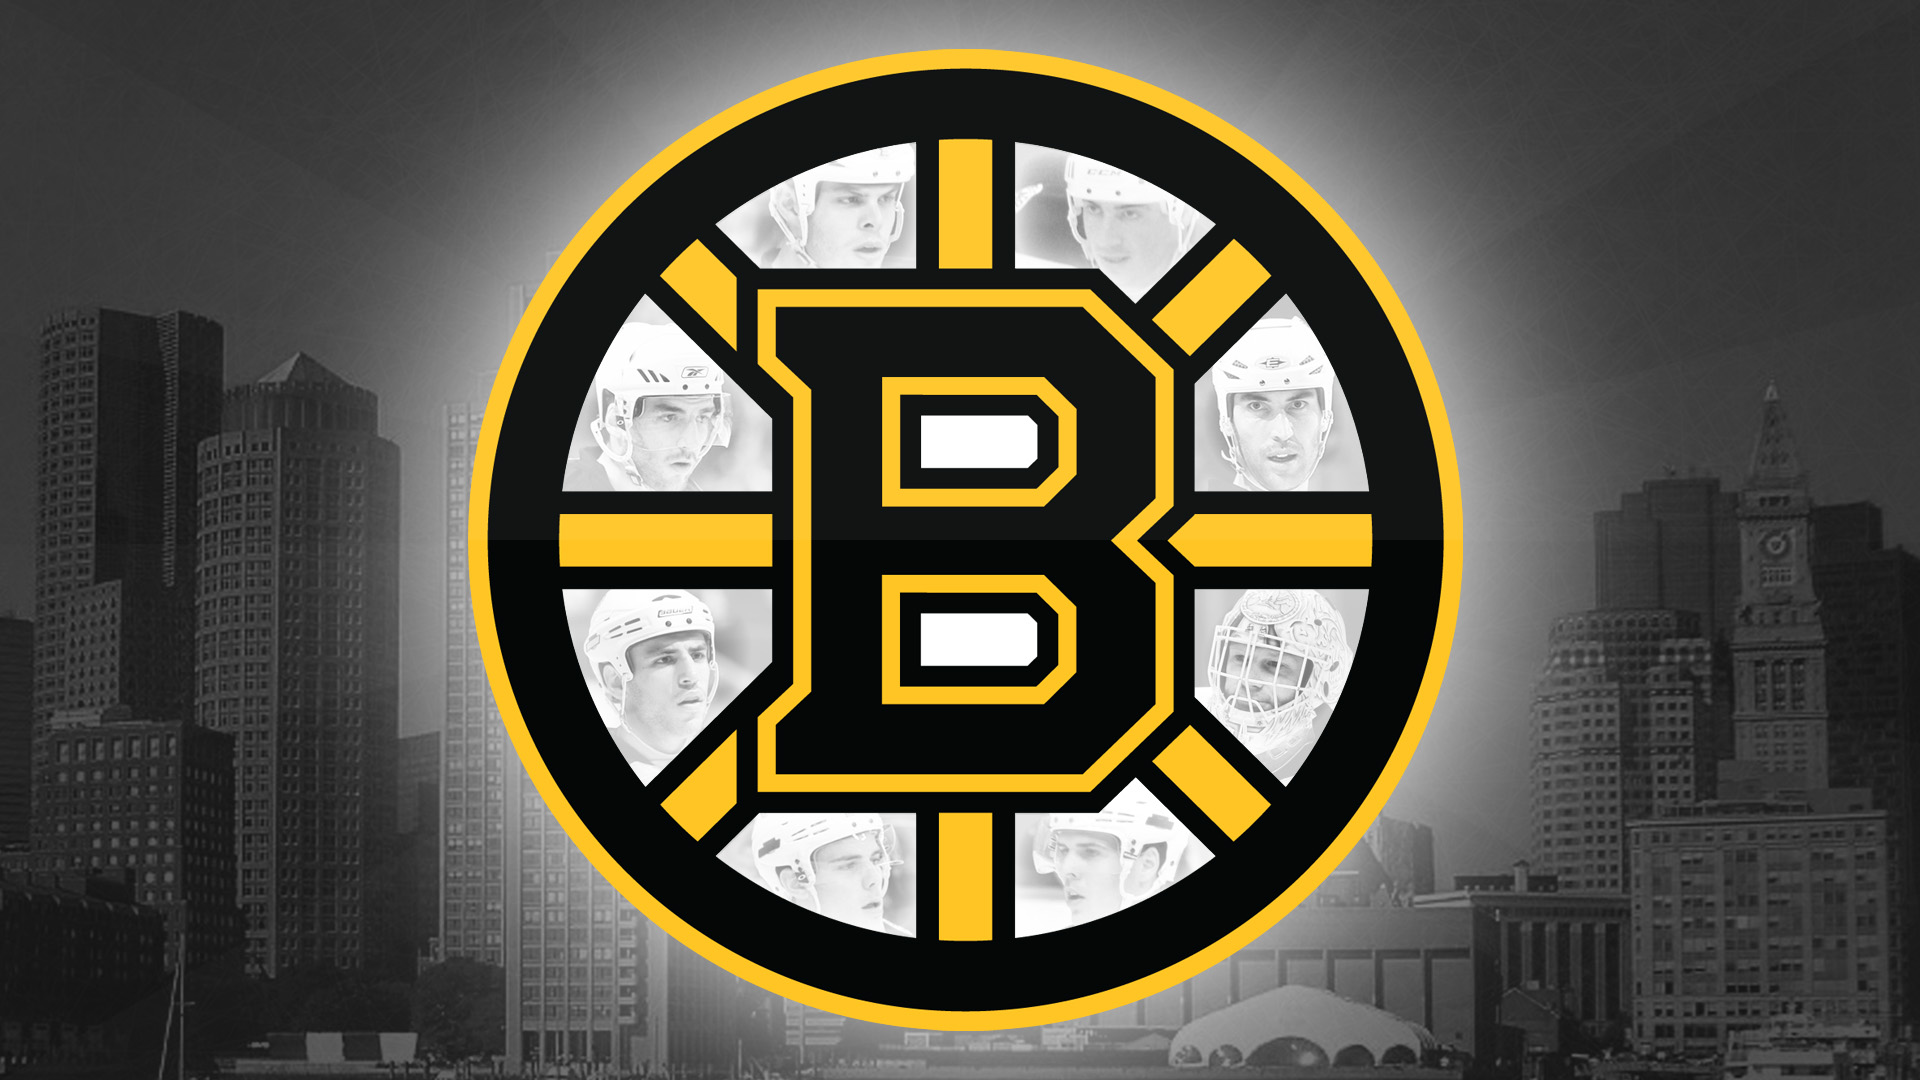 Hope you like this Boston Bruins HD background as much as we do!